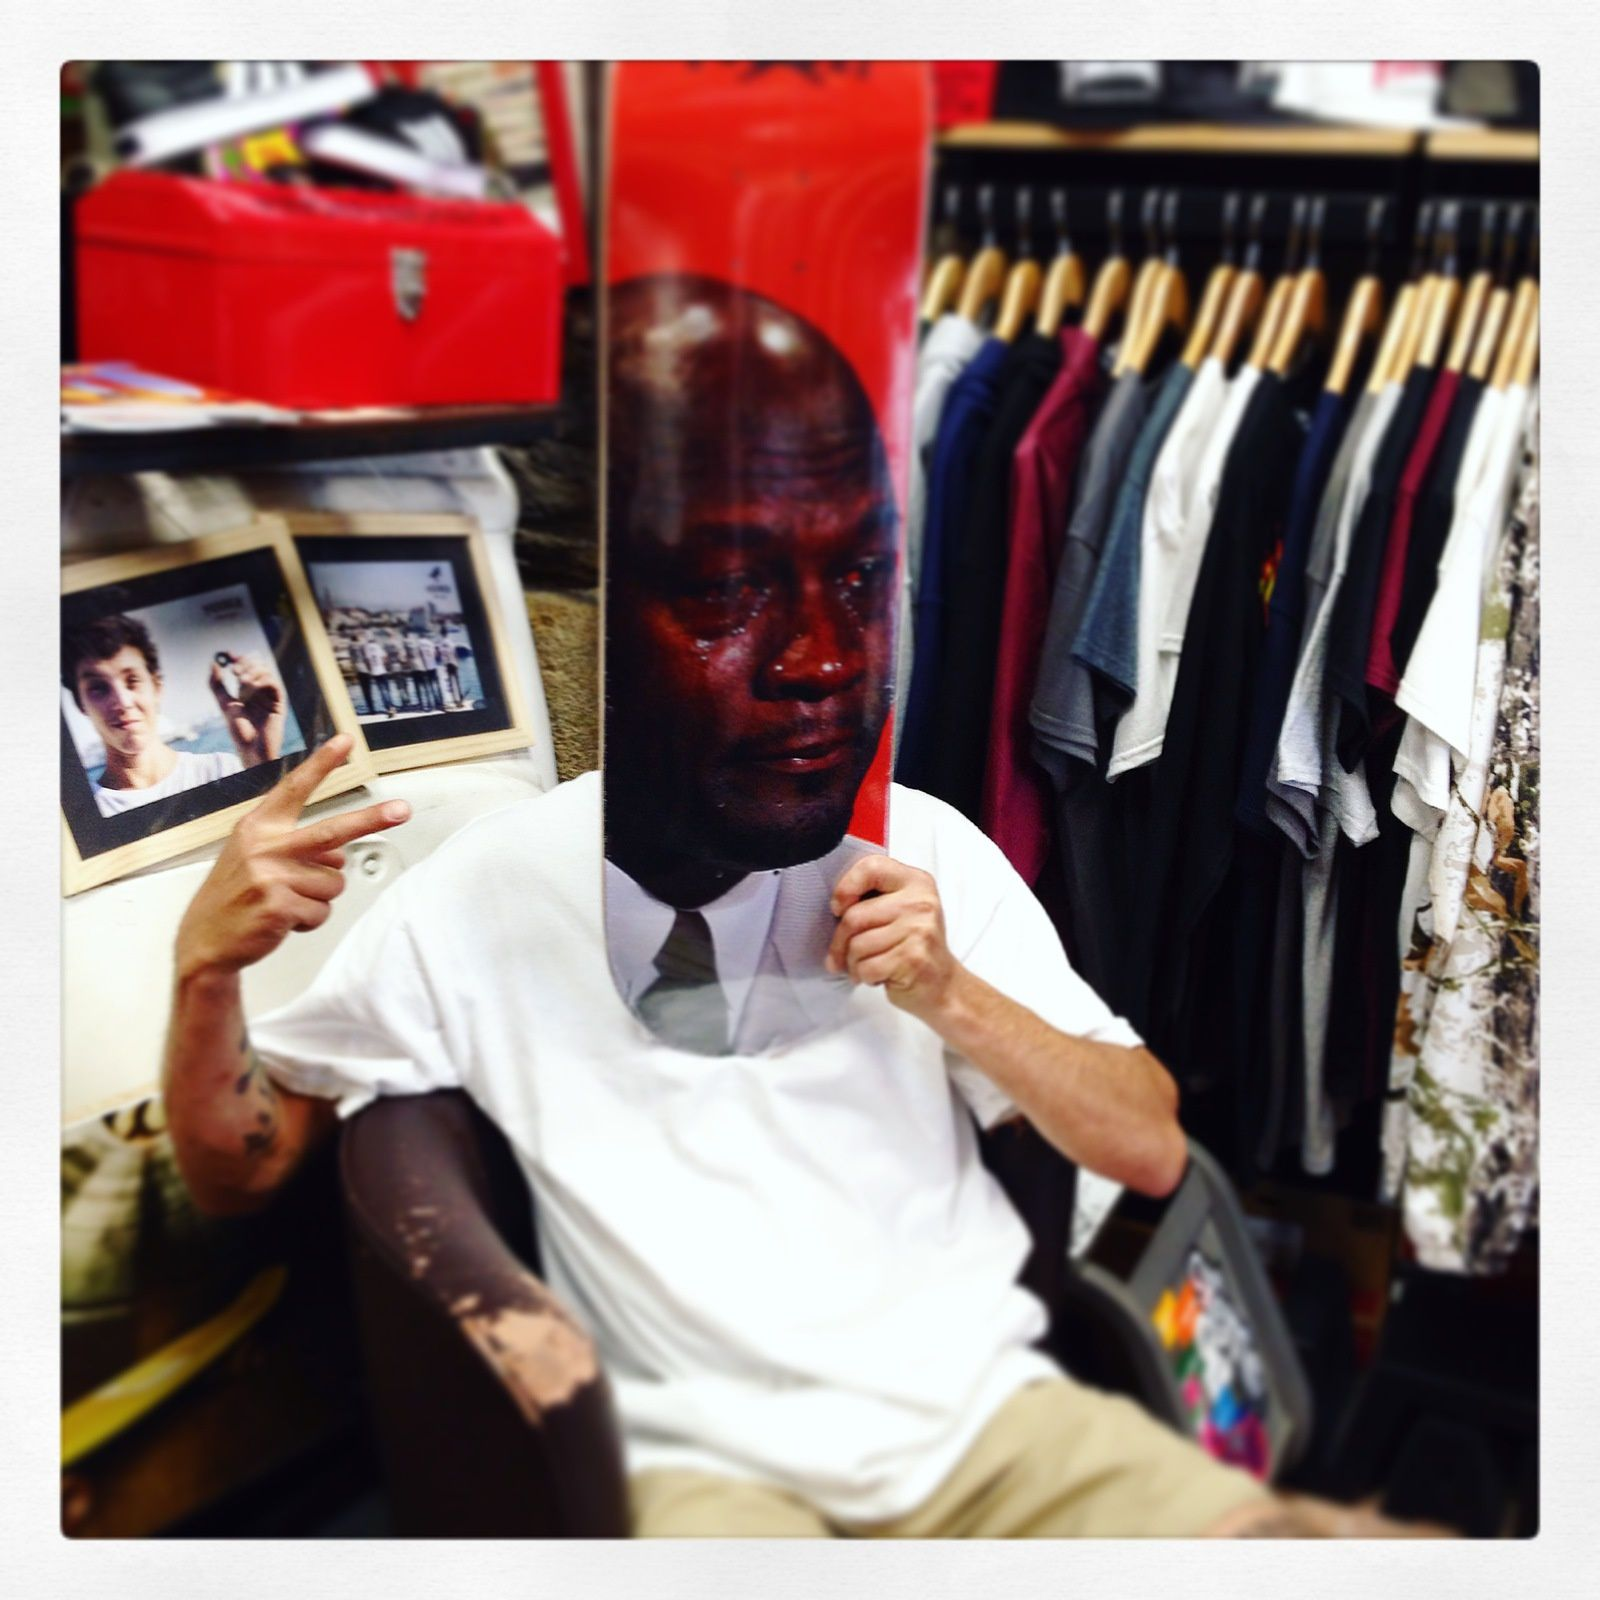 Crying Jordan deck from Pizza Skateboards